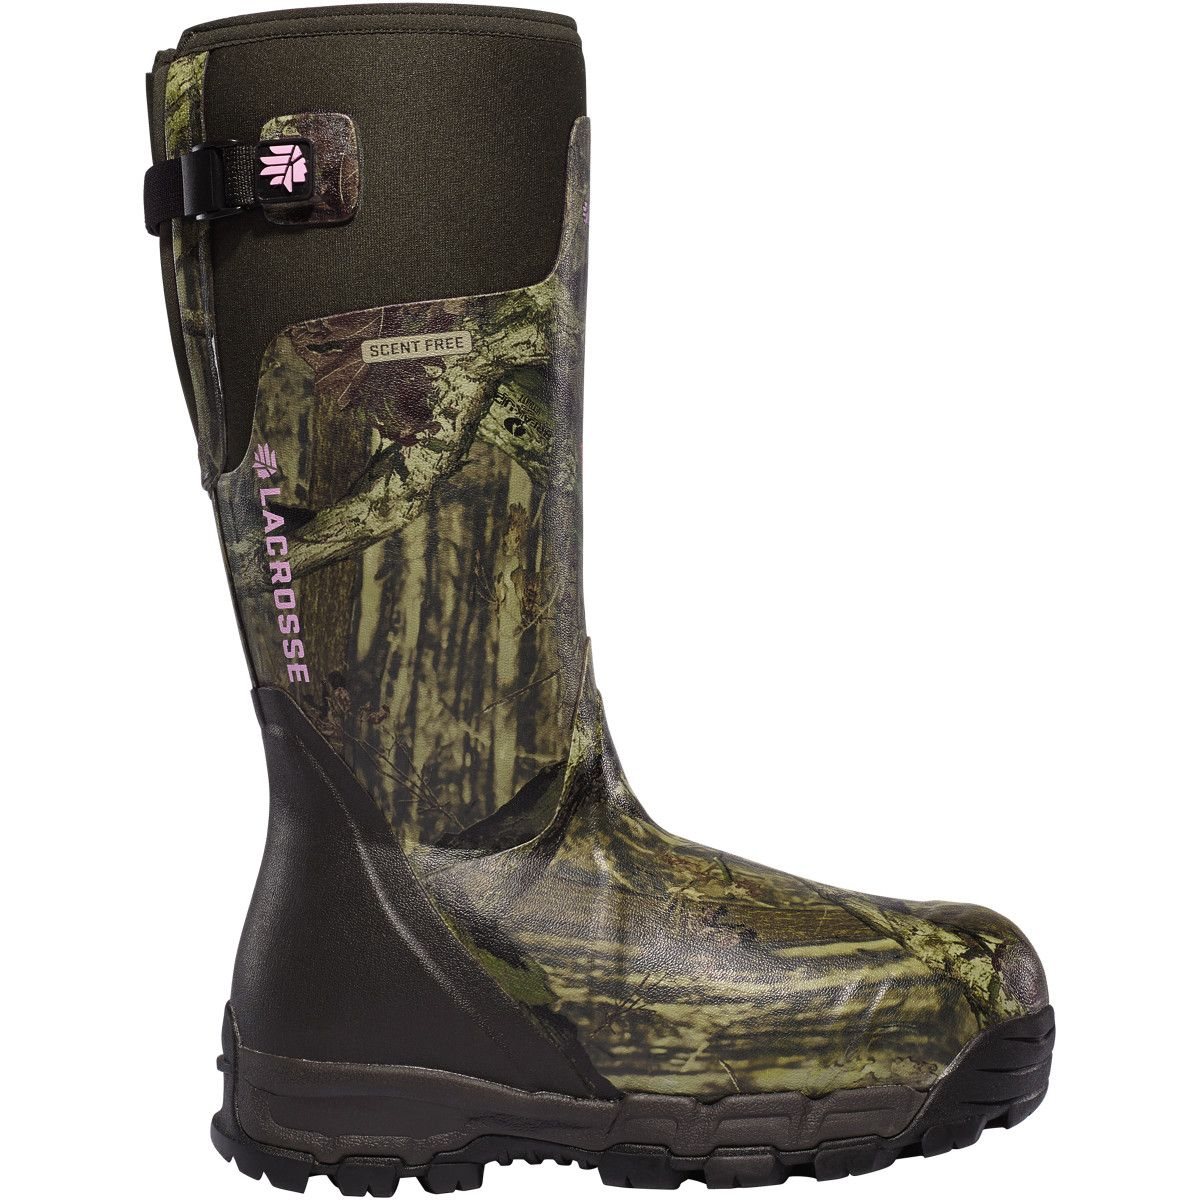 New Lacrosse Boots Went Ice Fishing And My Feet Stayed Toasty Warm Http Www Lacrossefootwear Com Women Hunt Women S Alp Fishing Boots Boots Hunting Boots